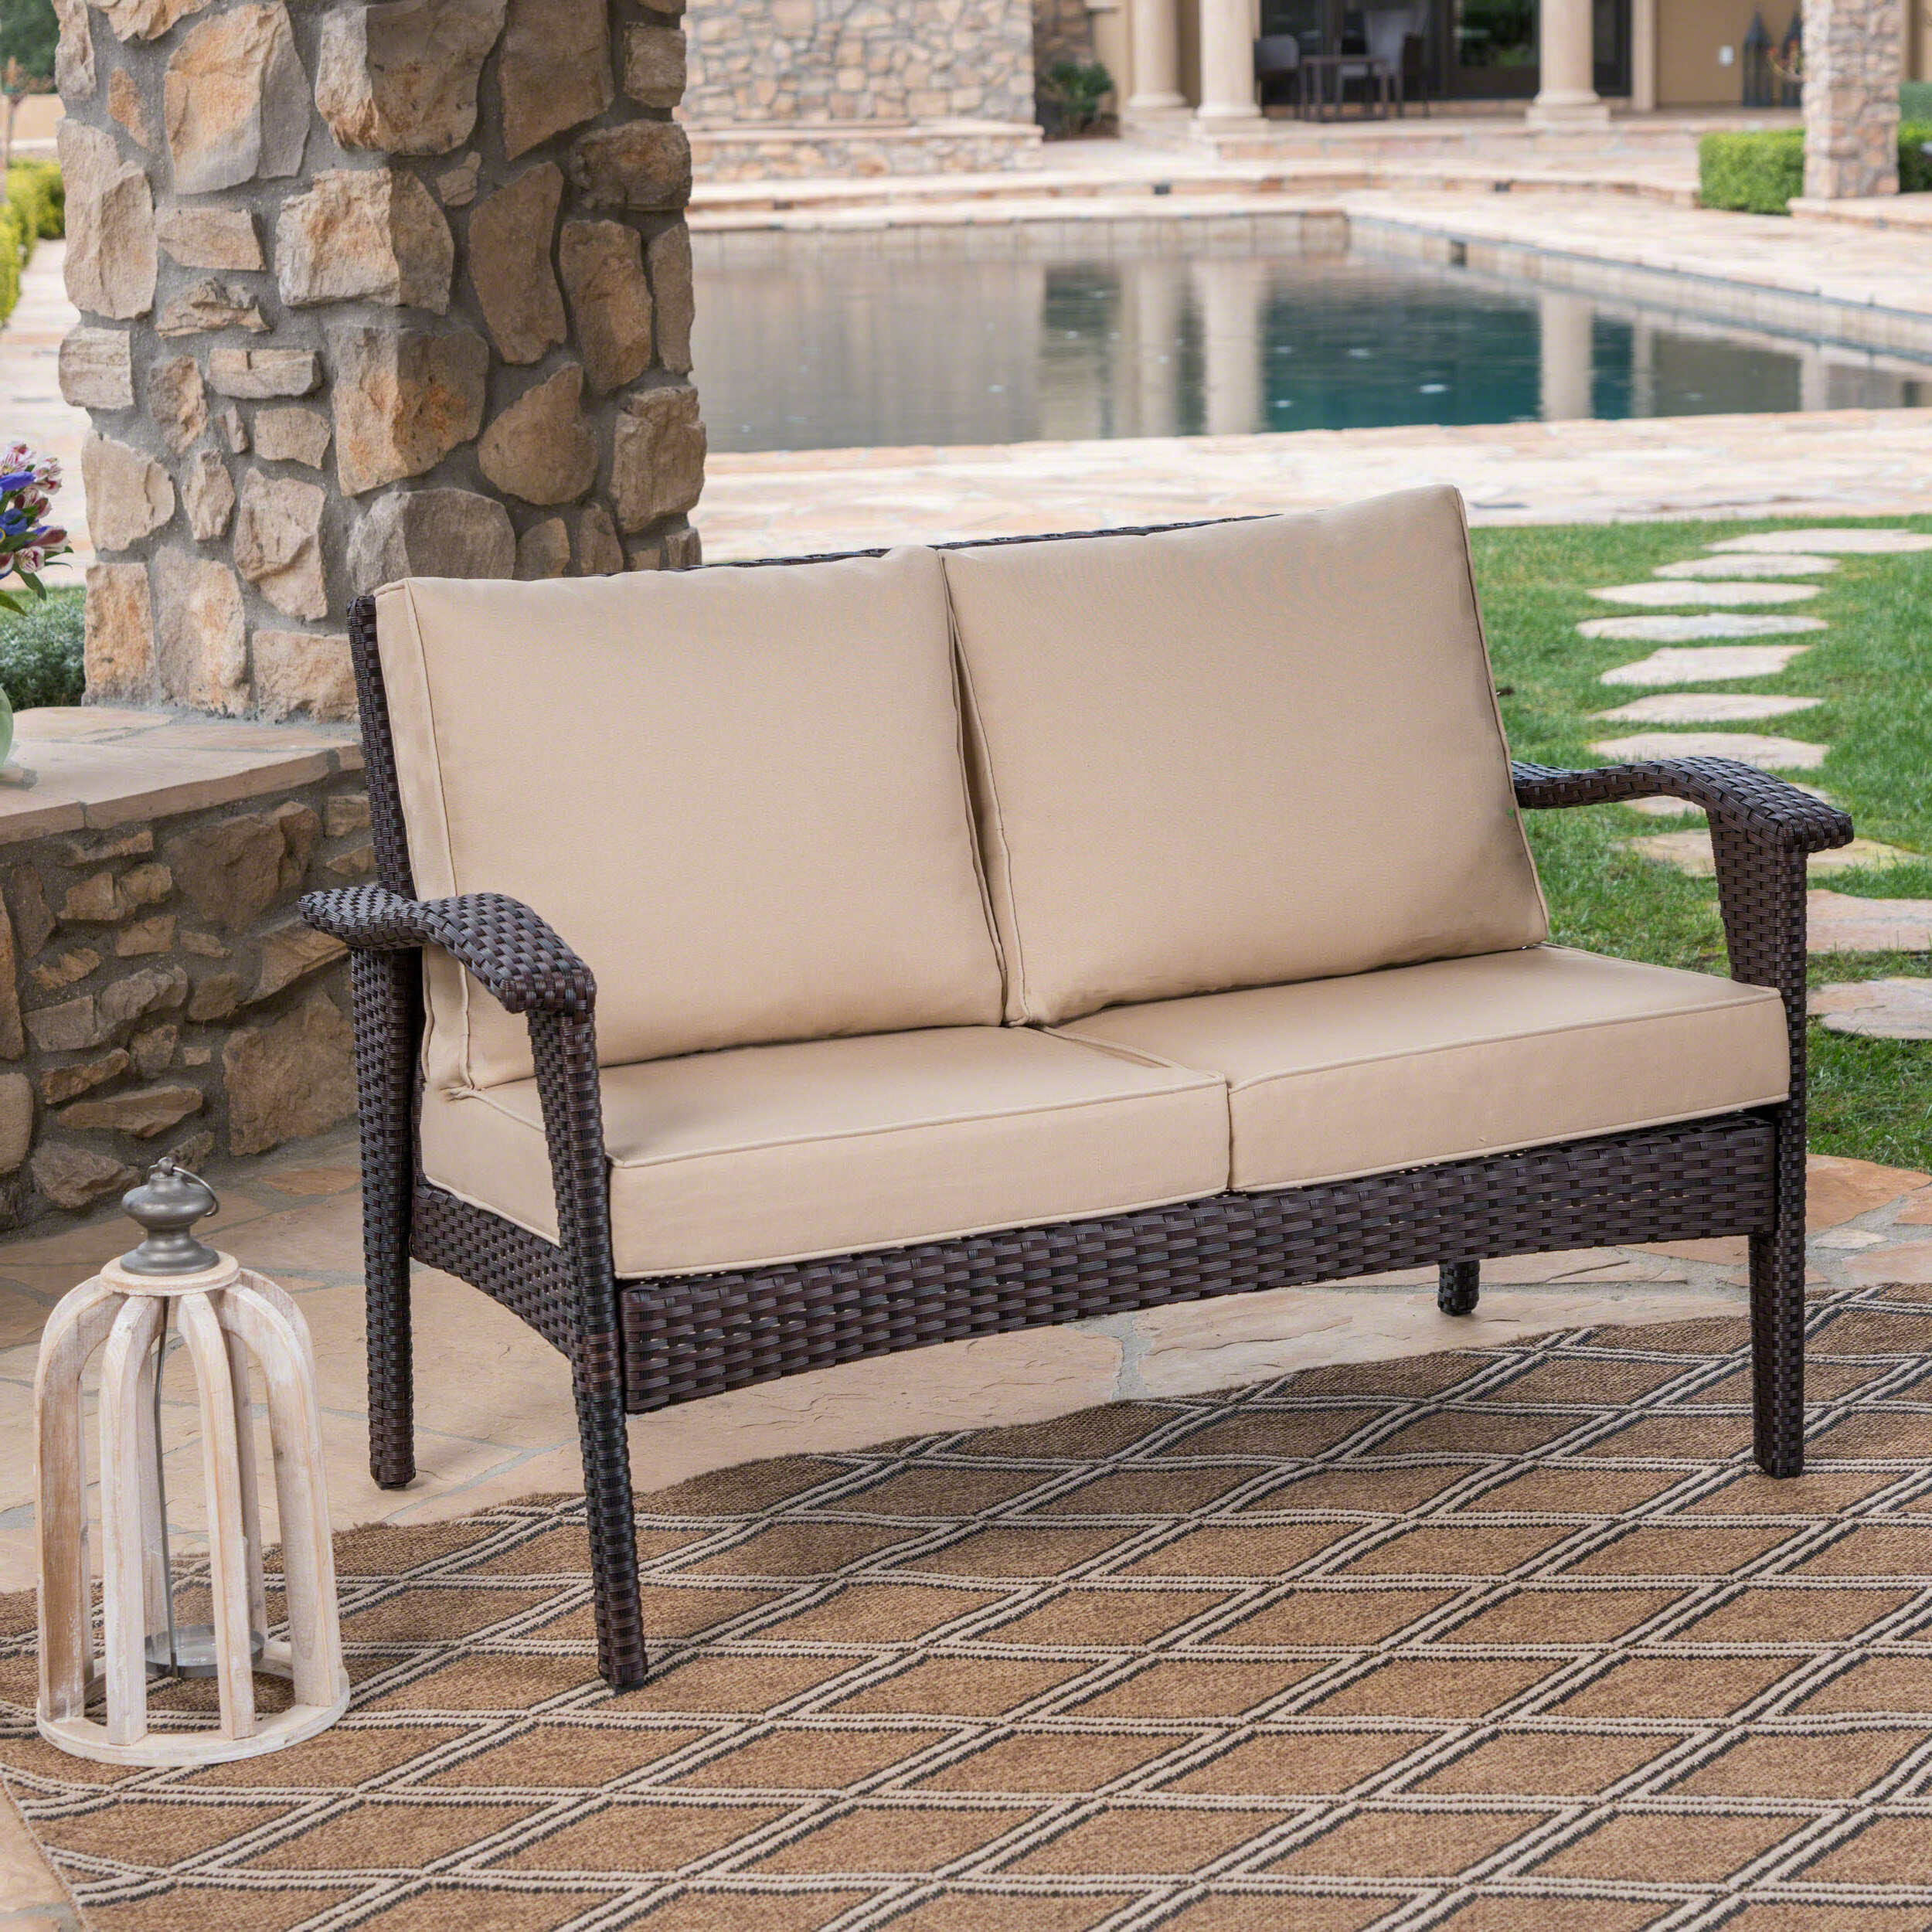 Hagler Outdoor Loveseat With Cushions Pertaining To Favorite Furst Outdoor Loveseats With Cushions (View 14 of 25)